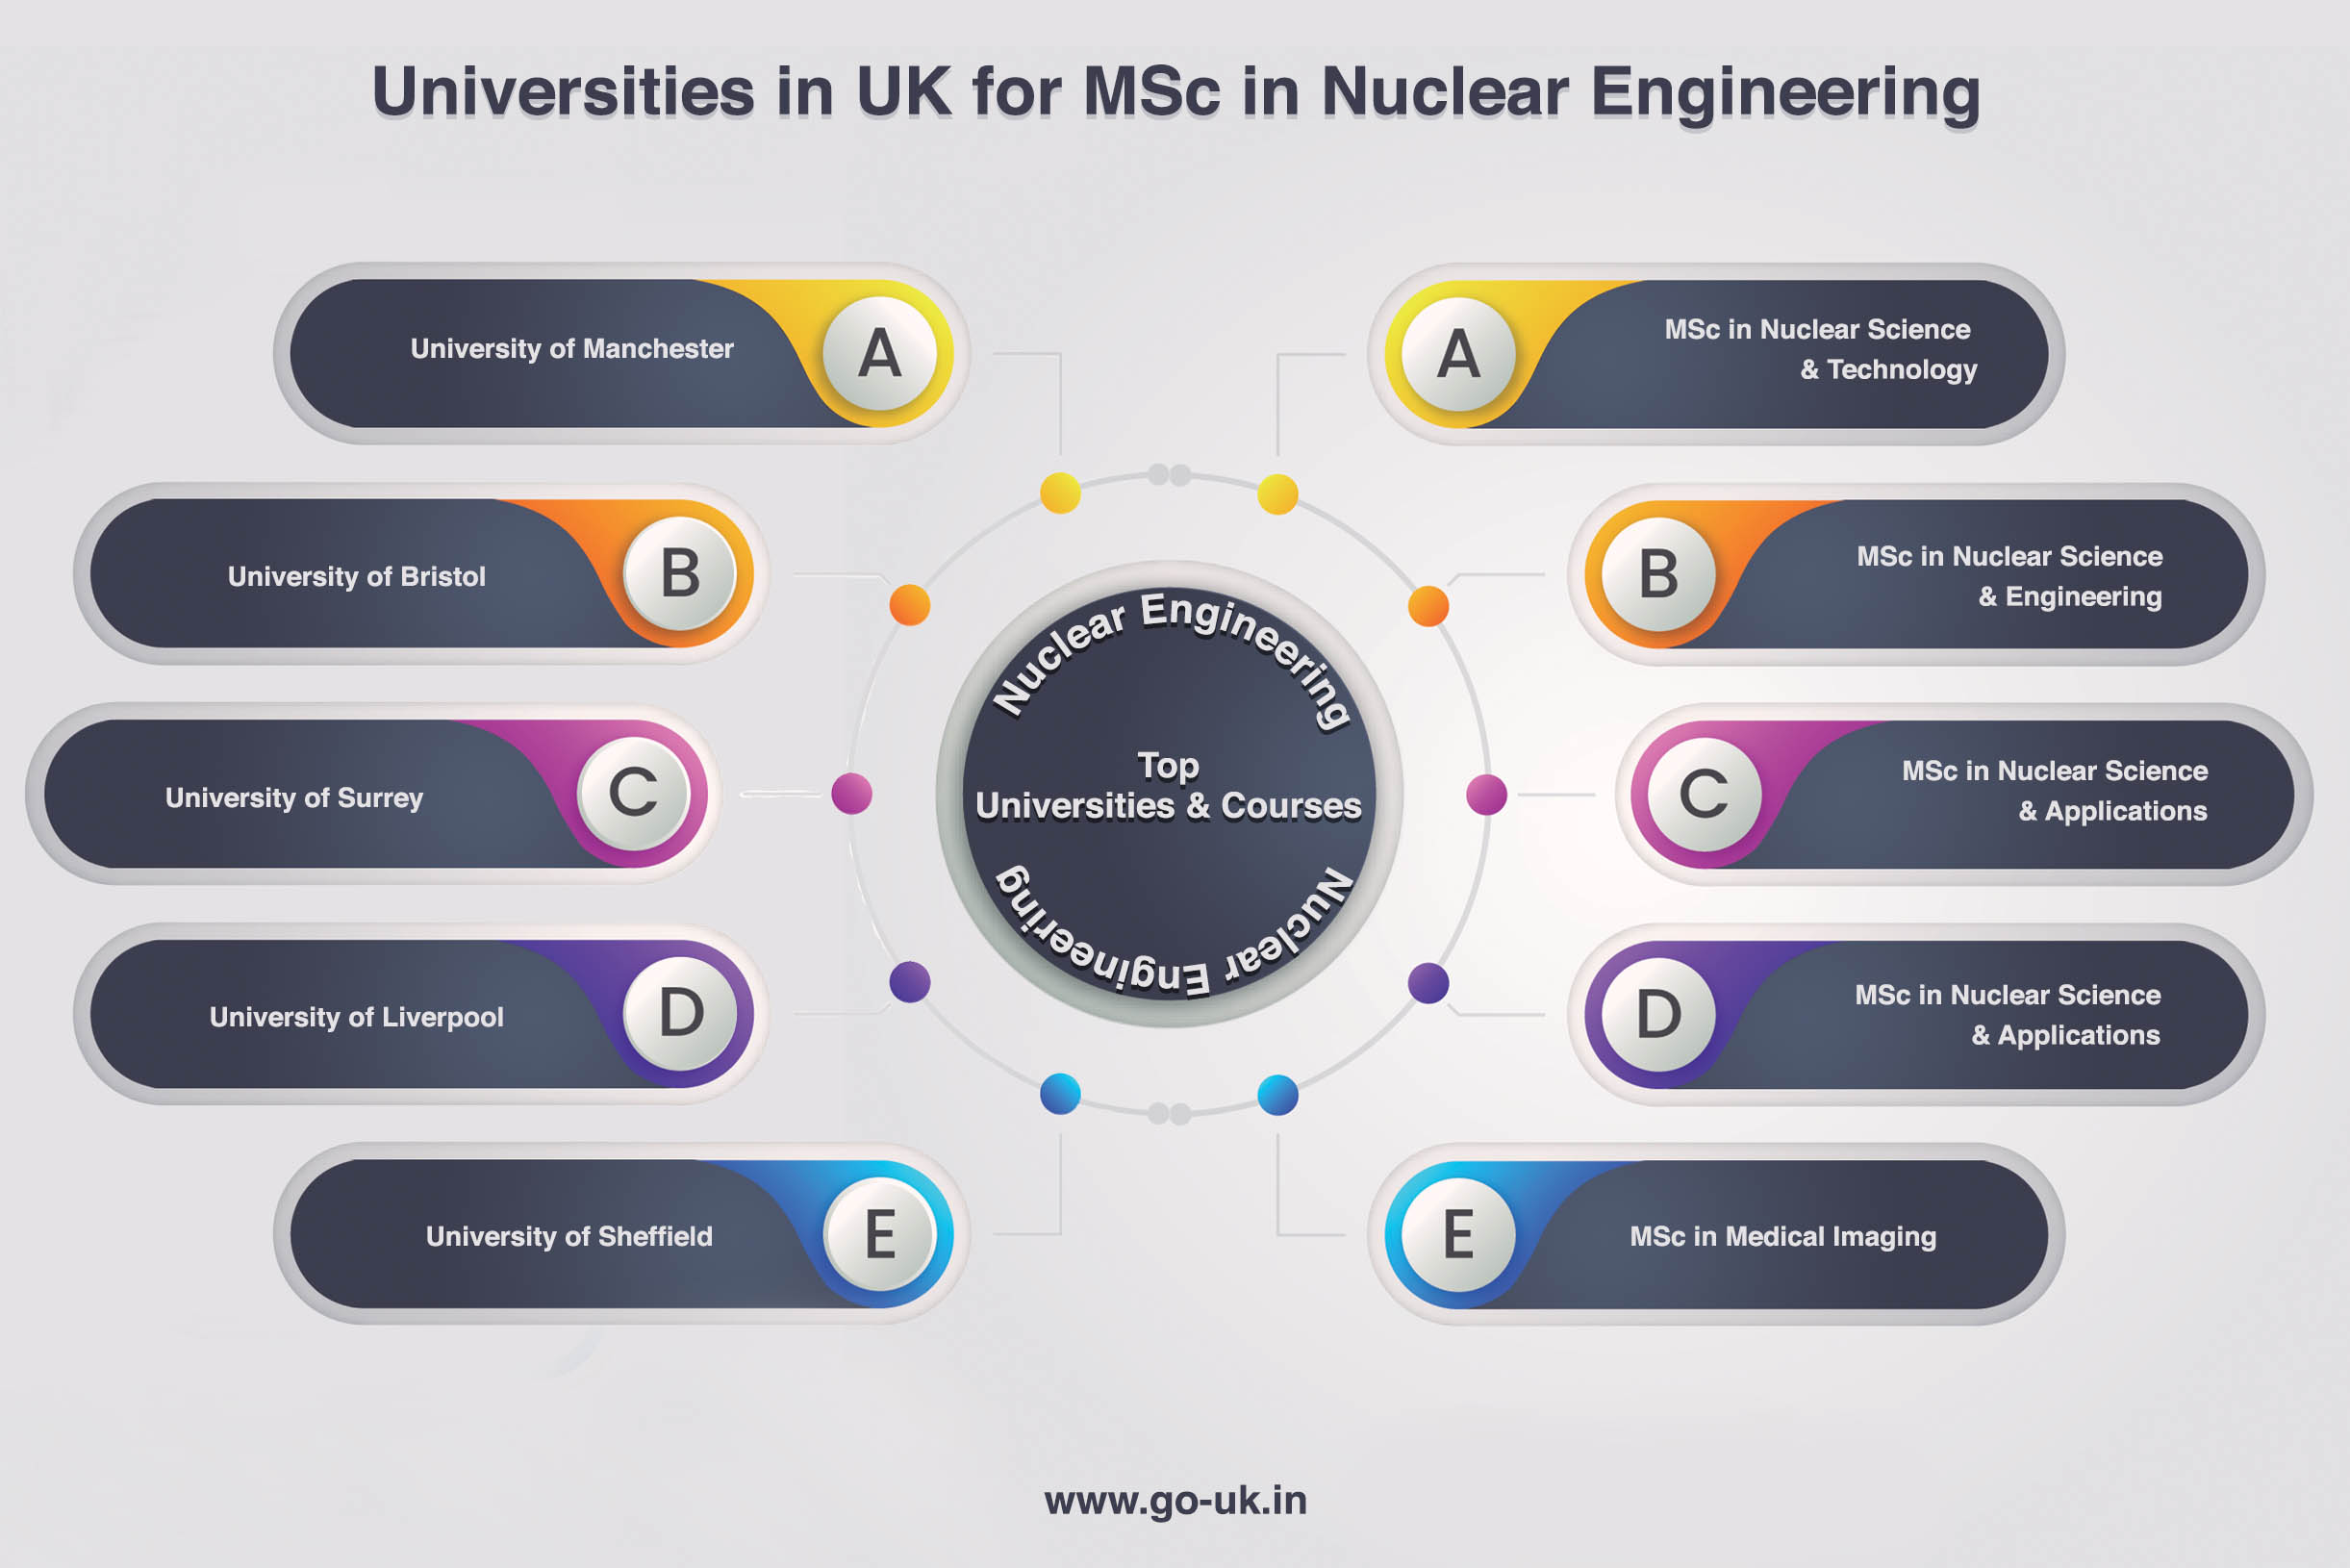 Universities in UK for MSc in Nuclear Engineering